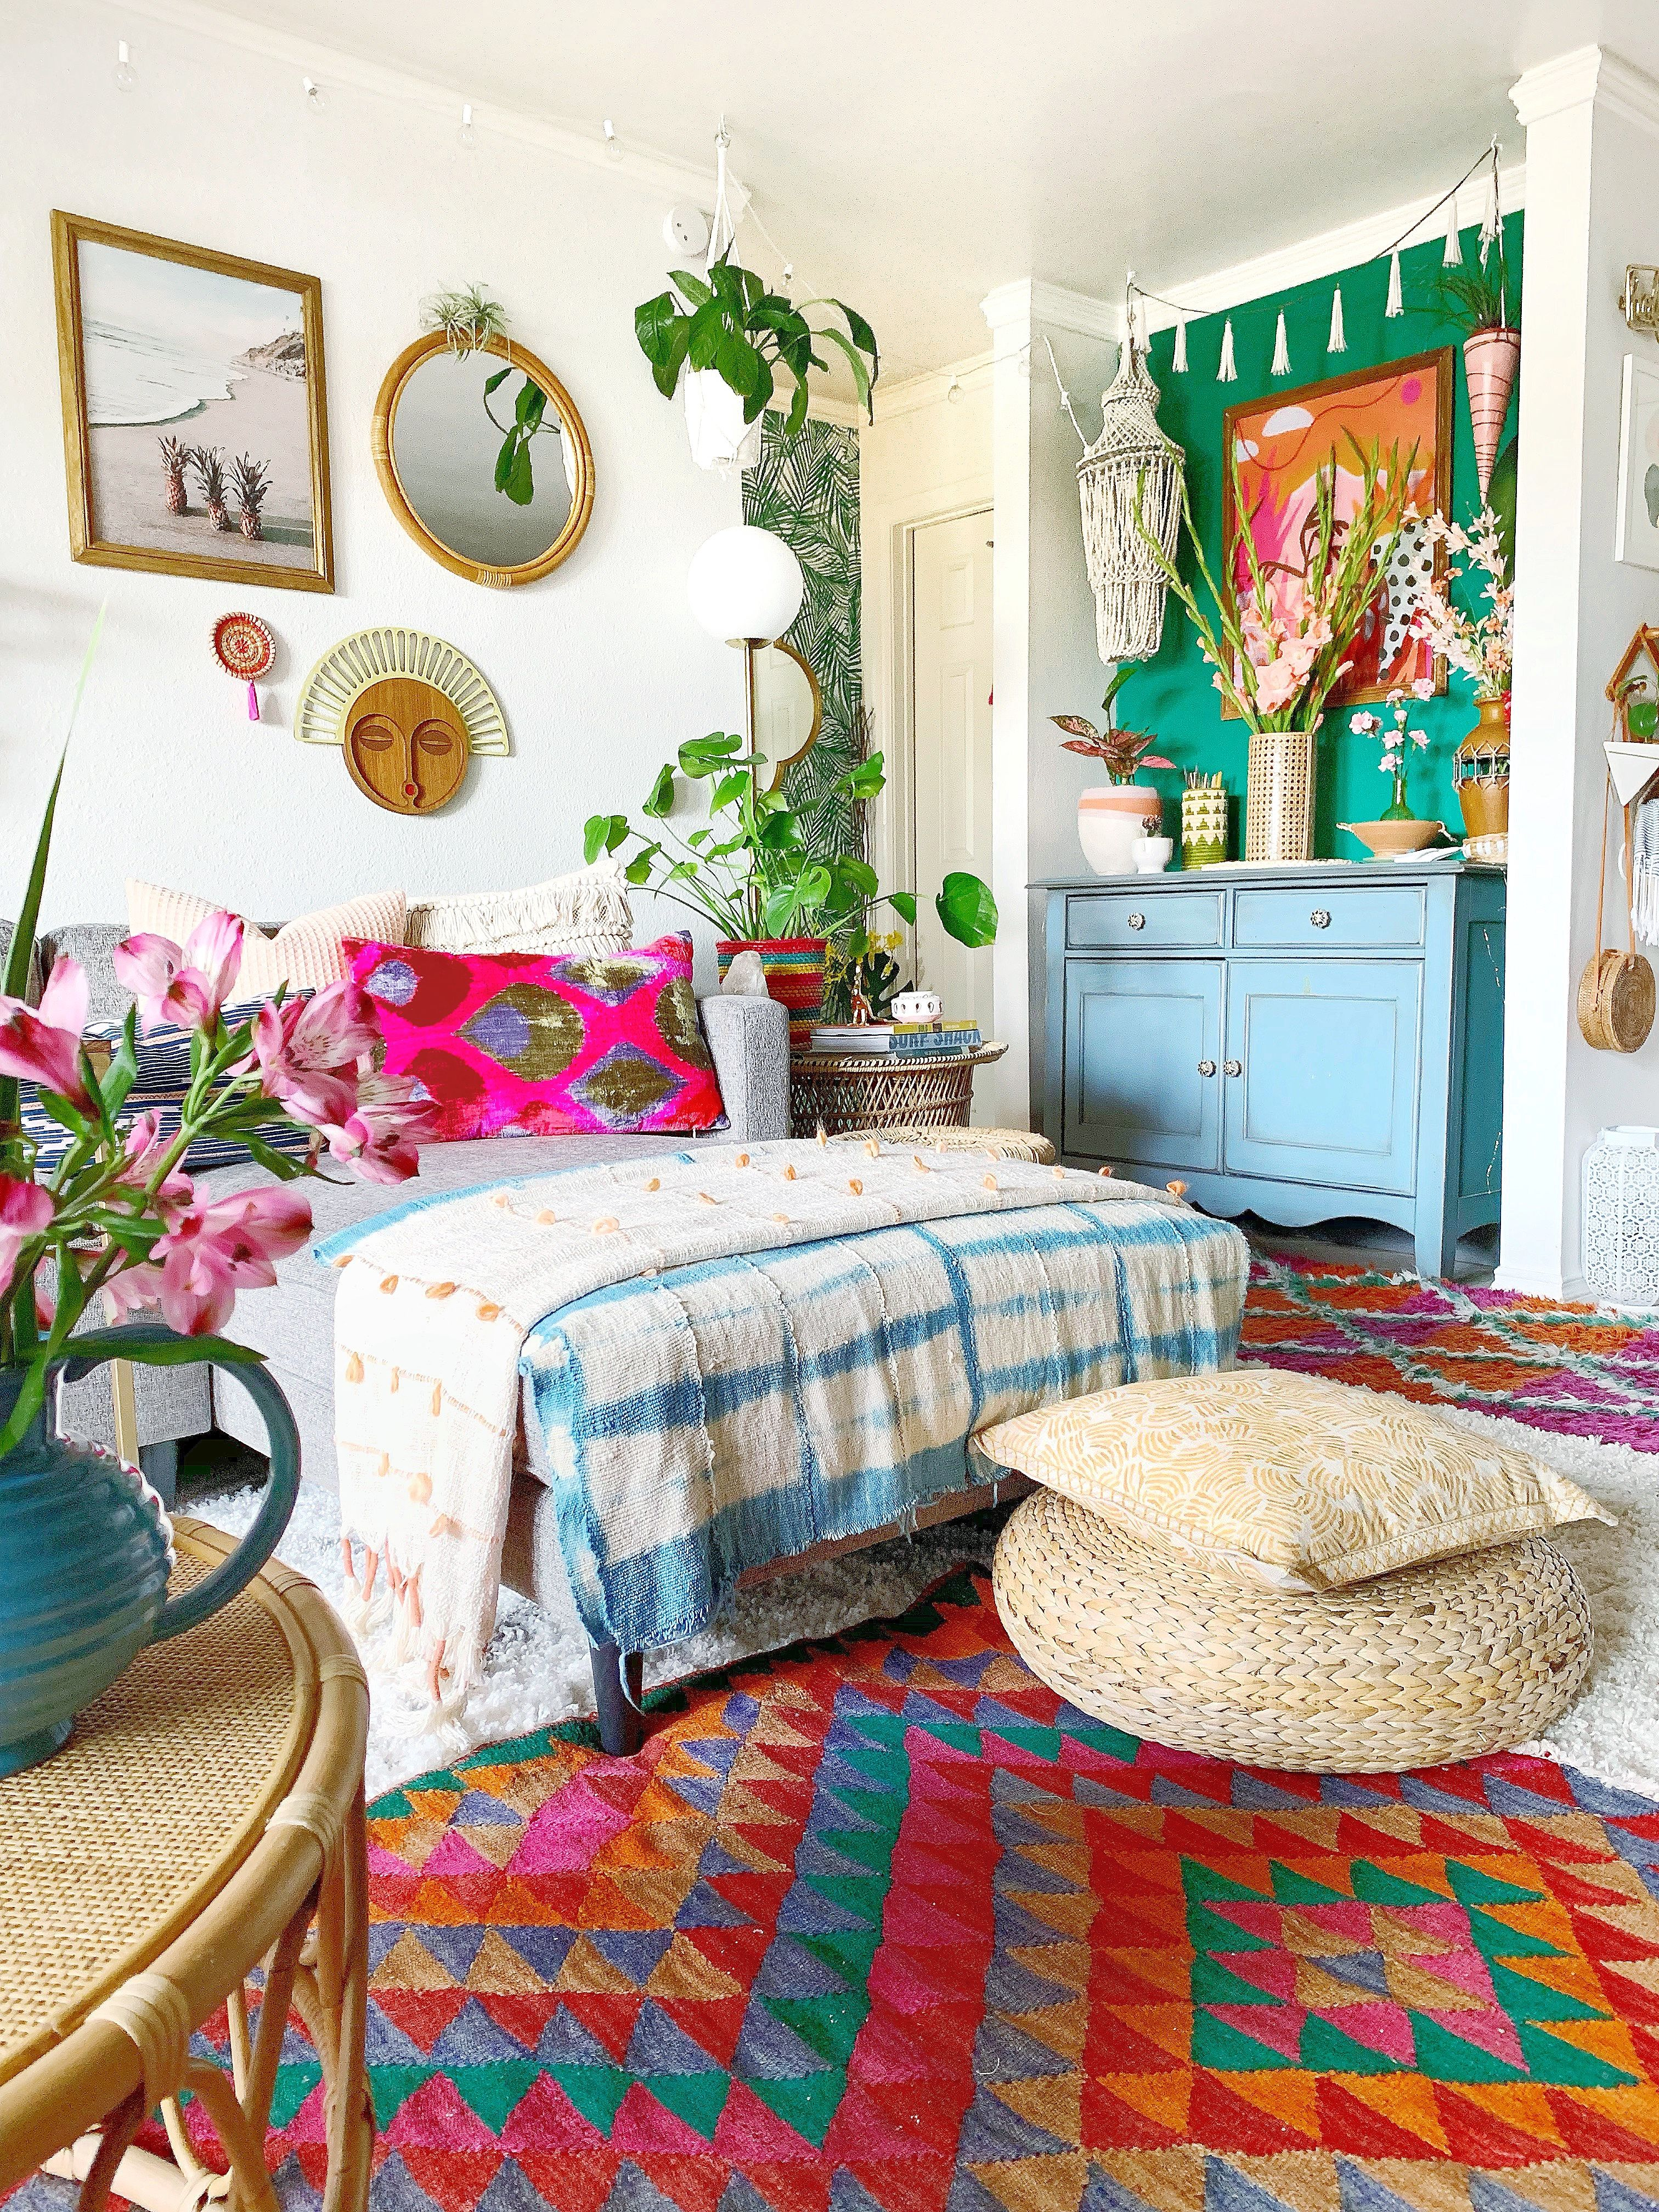 pinsare xo on sare's abode | boho beach, boho bedroom, bedroom boho